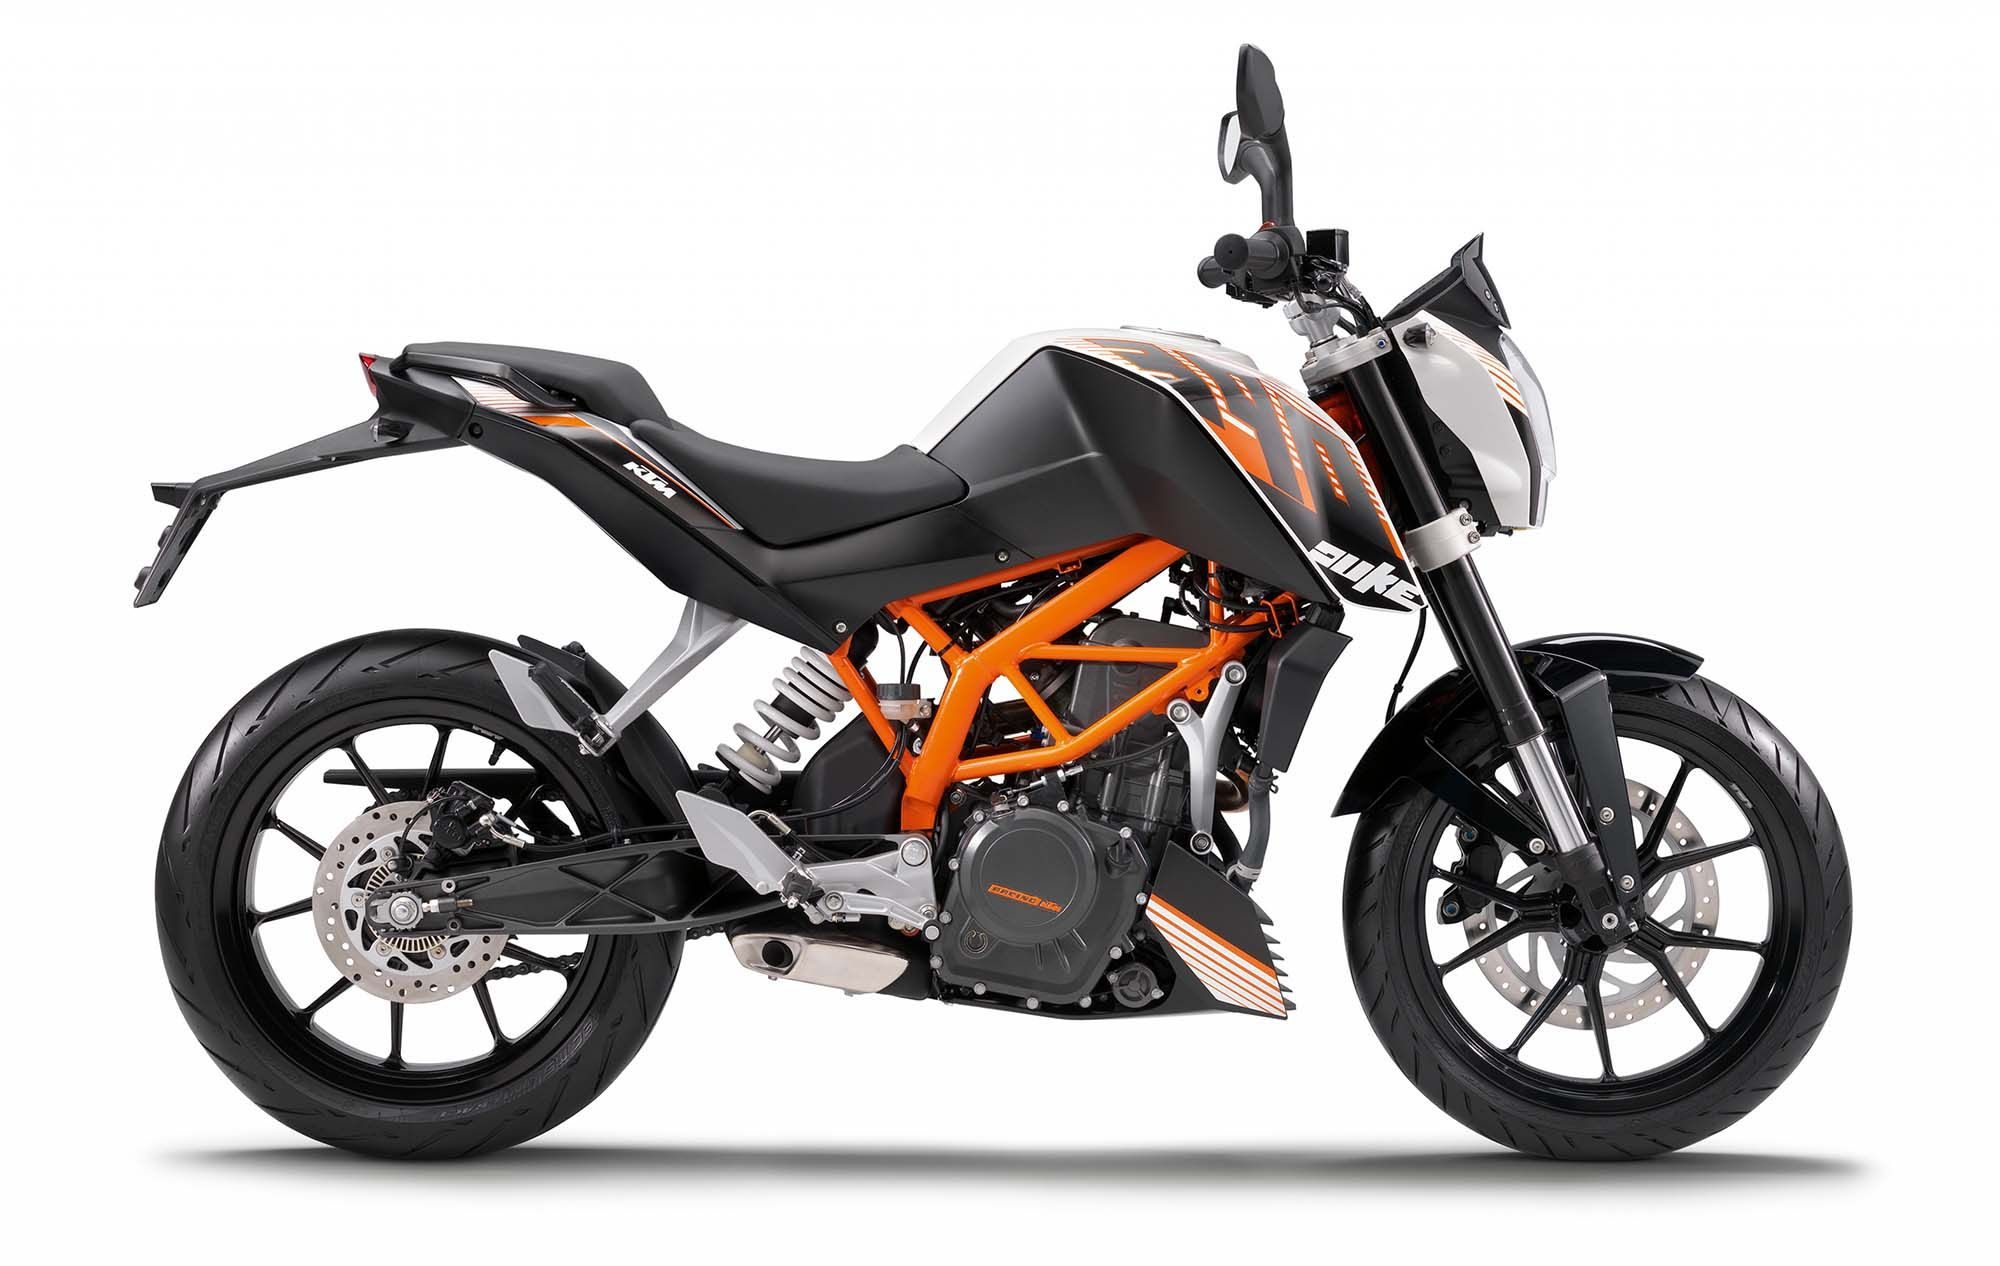 More High Res Photos Of The Ktm 390 Duke Beginner Motorcycle